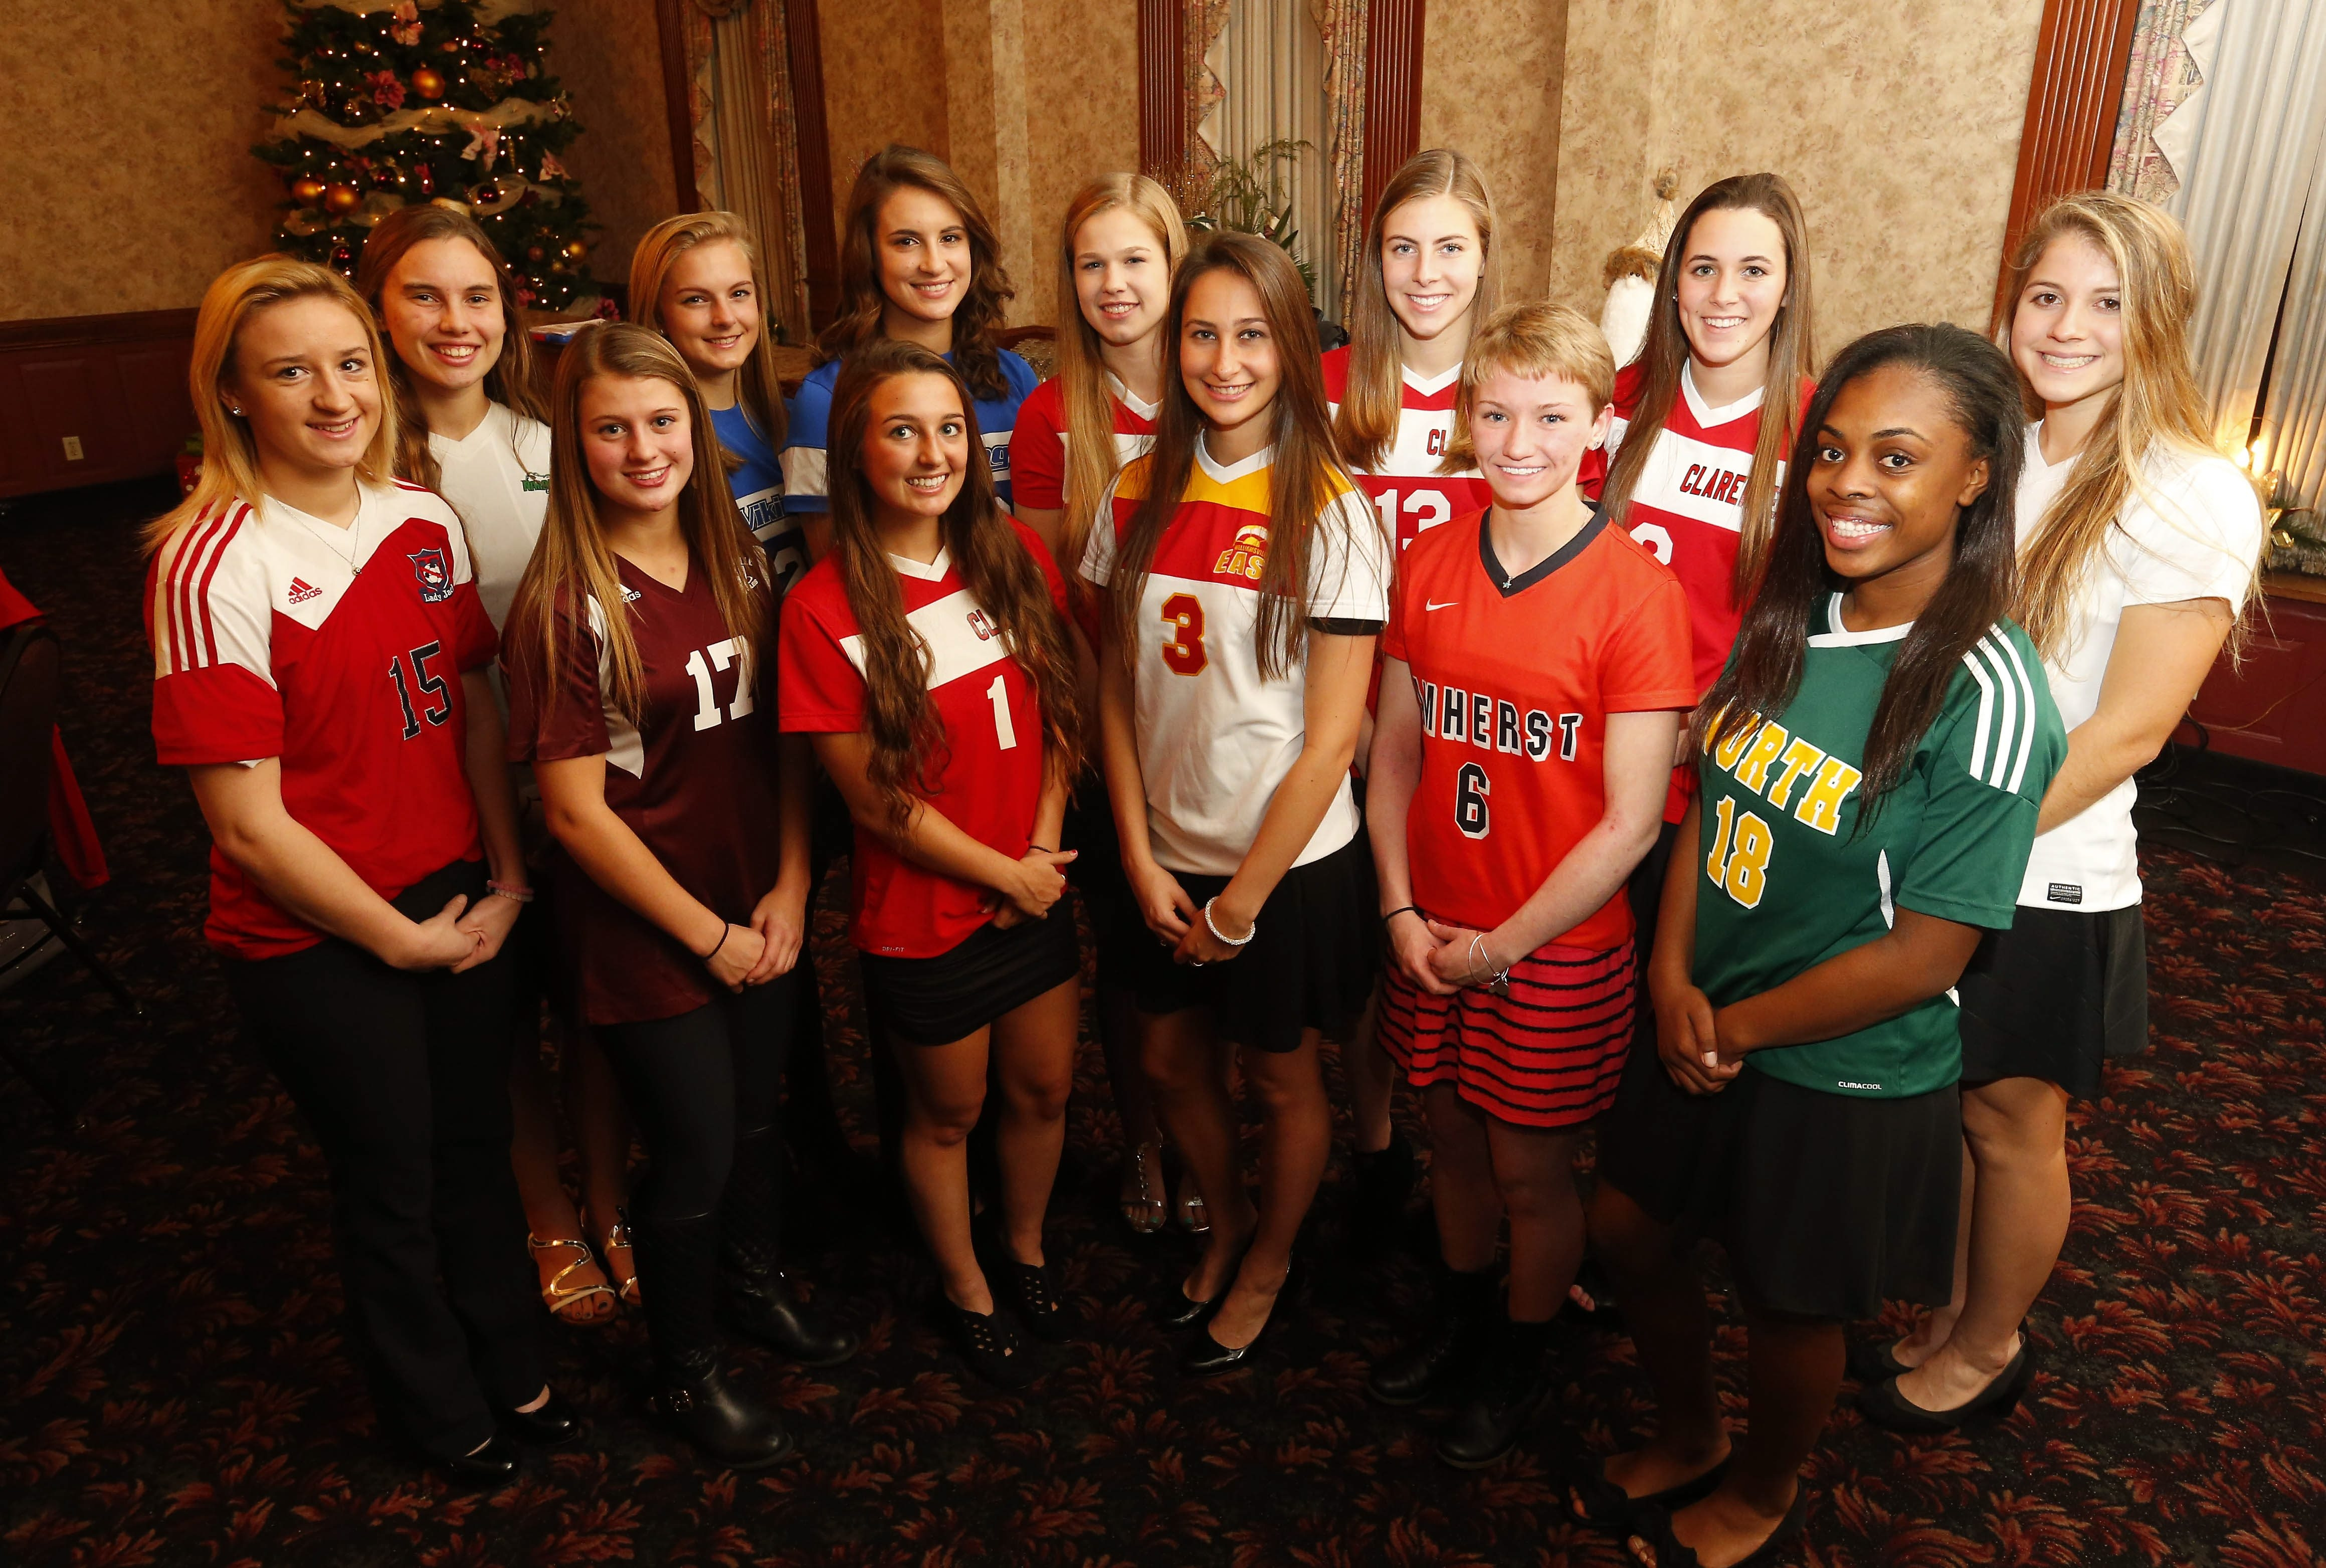 The All-WNY Girls Soccer first team. Front row (left to right): Allie Smyth (North Tonawanda), Morgan Zlockie (Ellicottville), Riley Bowers (Clarence), Marissa Birzon (Williamsville East), Amanda Roberts (Amherst), Maya Palmer (Williamsville North). Back row (left to right): Eileen Rath (Nardin), Madisyn Pezzino (Grand Island), Marcy Barberic (Grand Island), Hannah Spitzer (Clarence), Sydney Cerza (Clarence), Molly Barden (Clarence), Emma Gervase (Nardin).